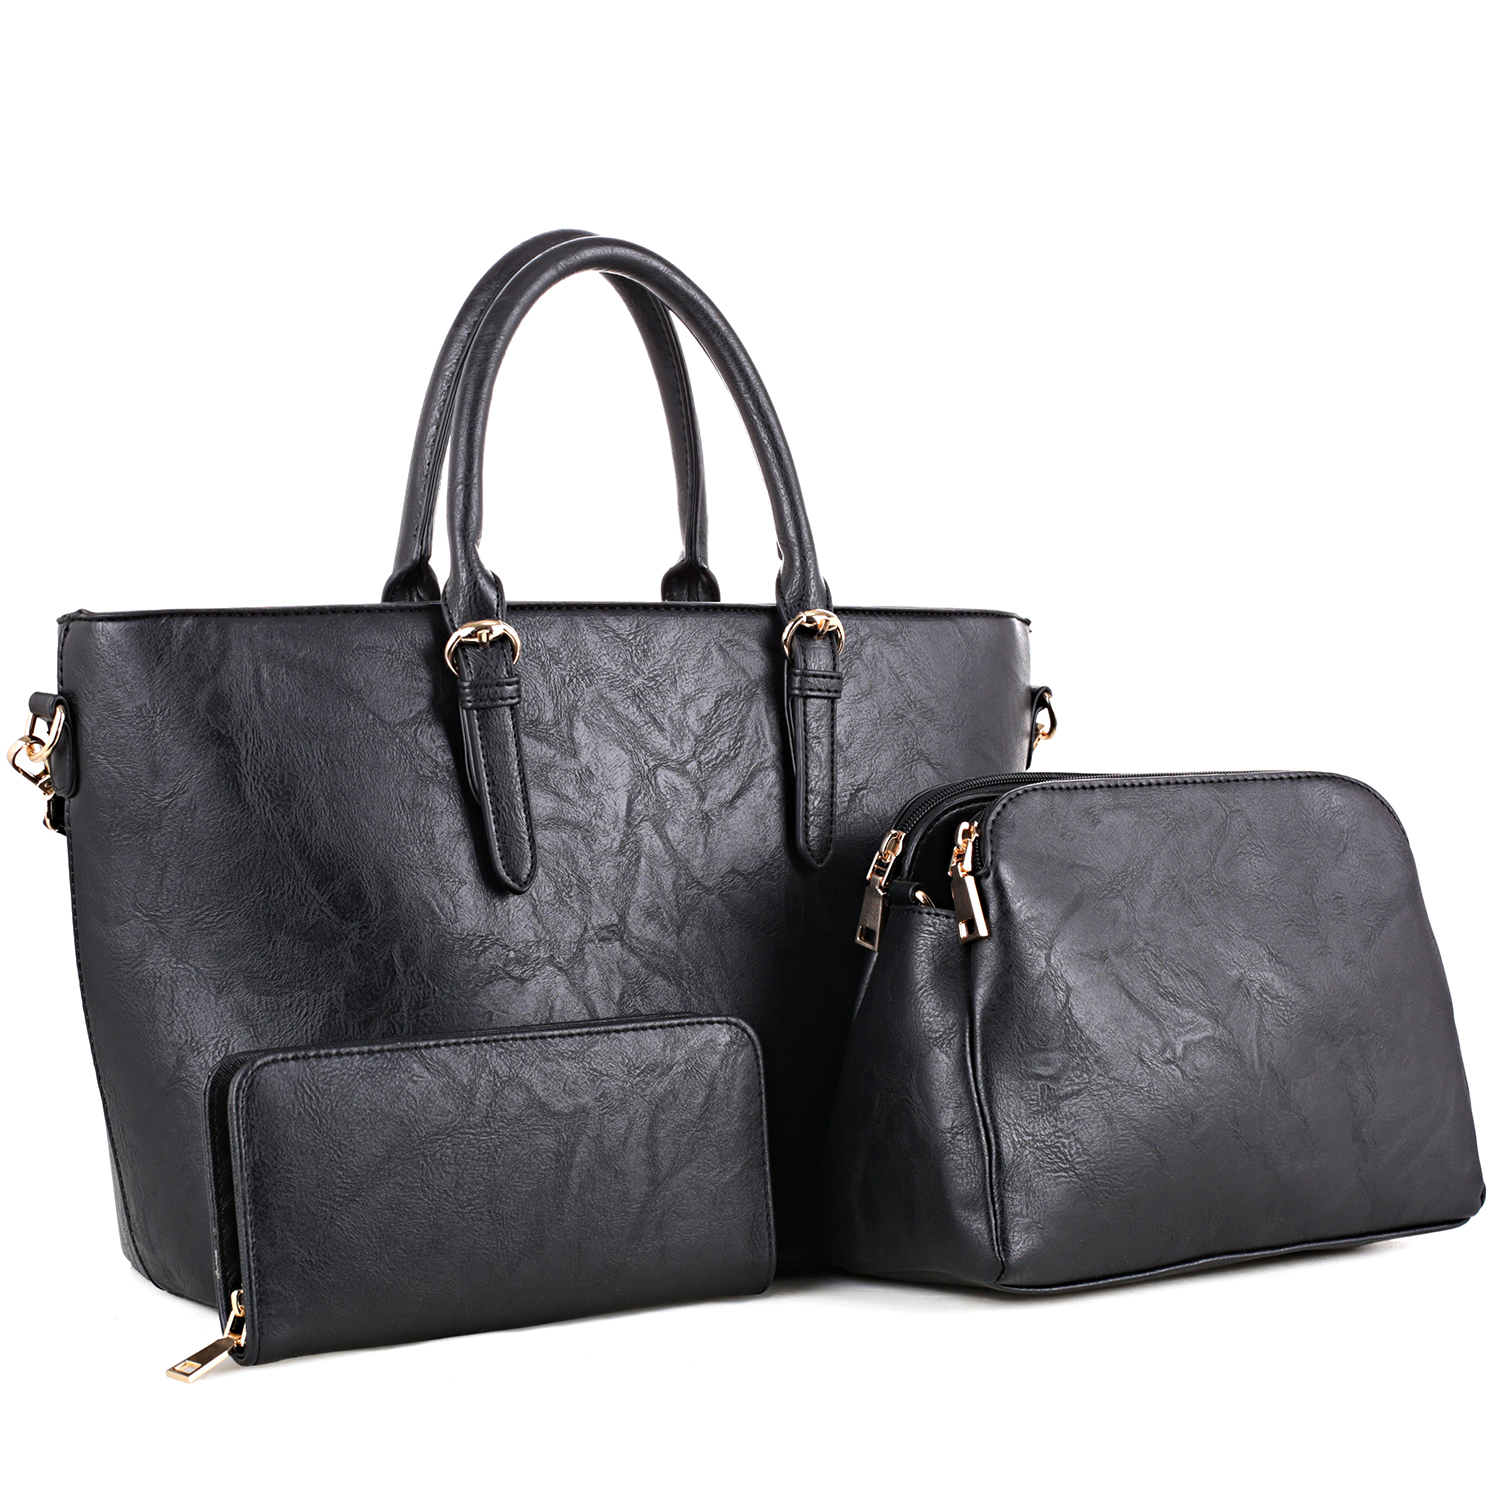 3-in-1 Large Classic Leather Tote Set with Free Matching Messenger Bag and Wallet